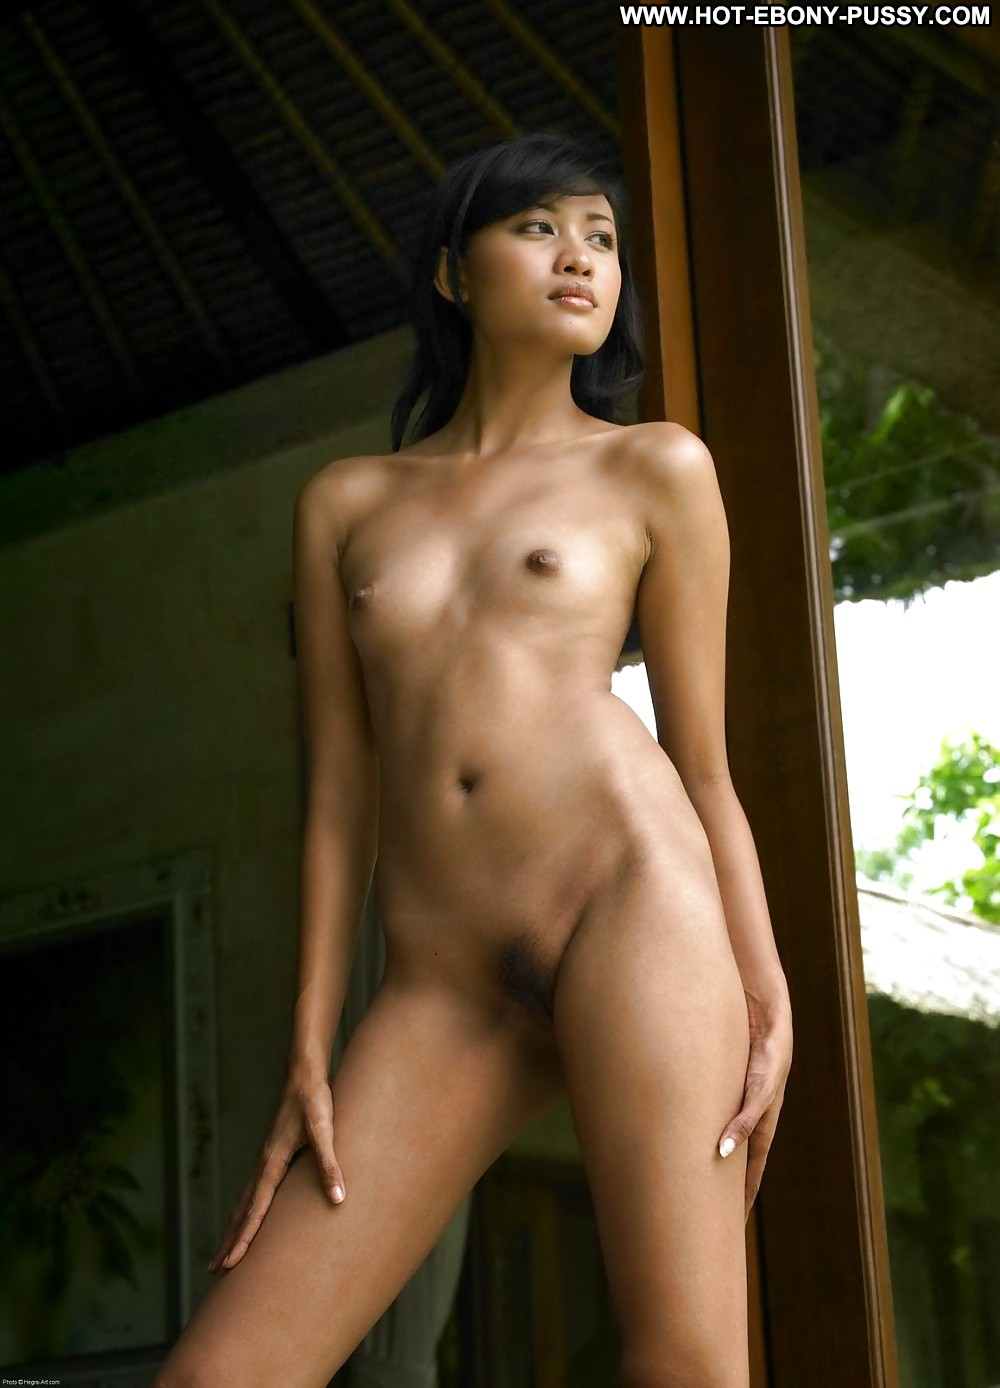 very hot xxx image